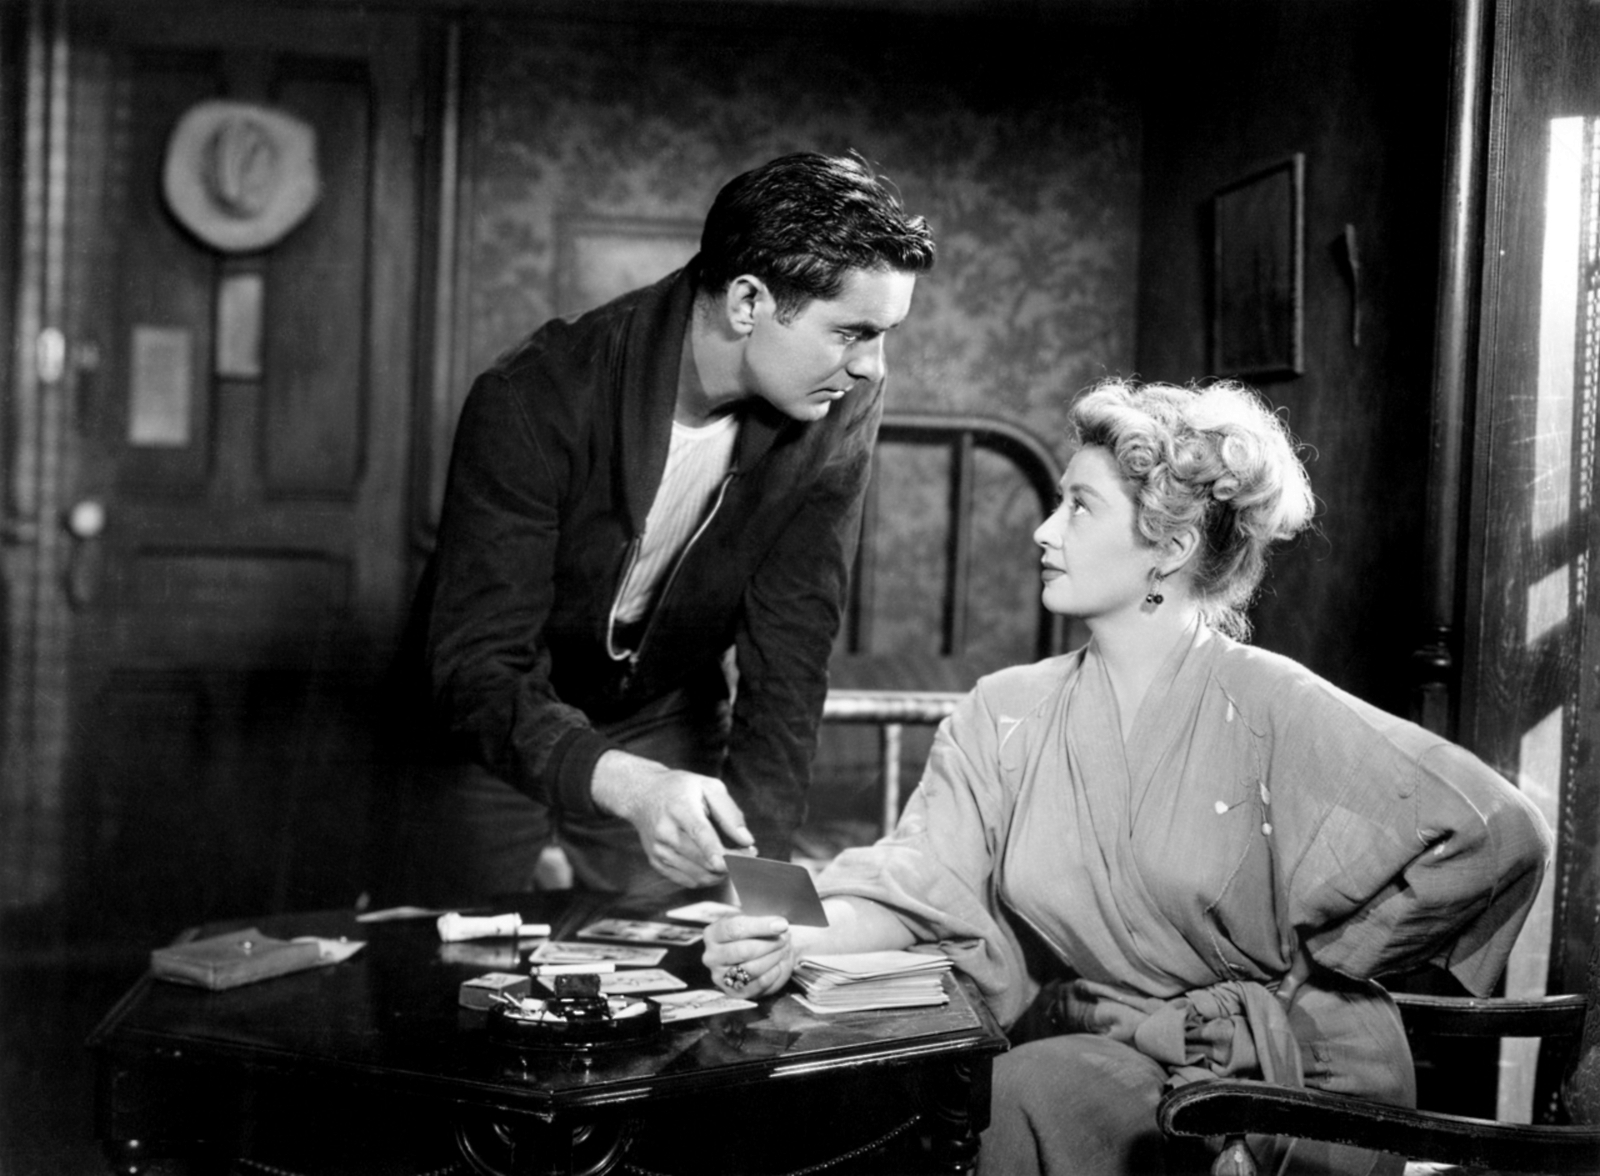 Tyrone Power, Jr. in Nightmare Alley With Joan Blondell